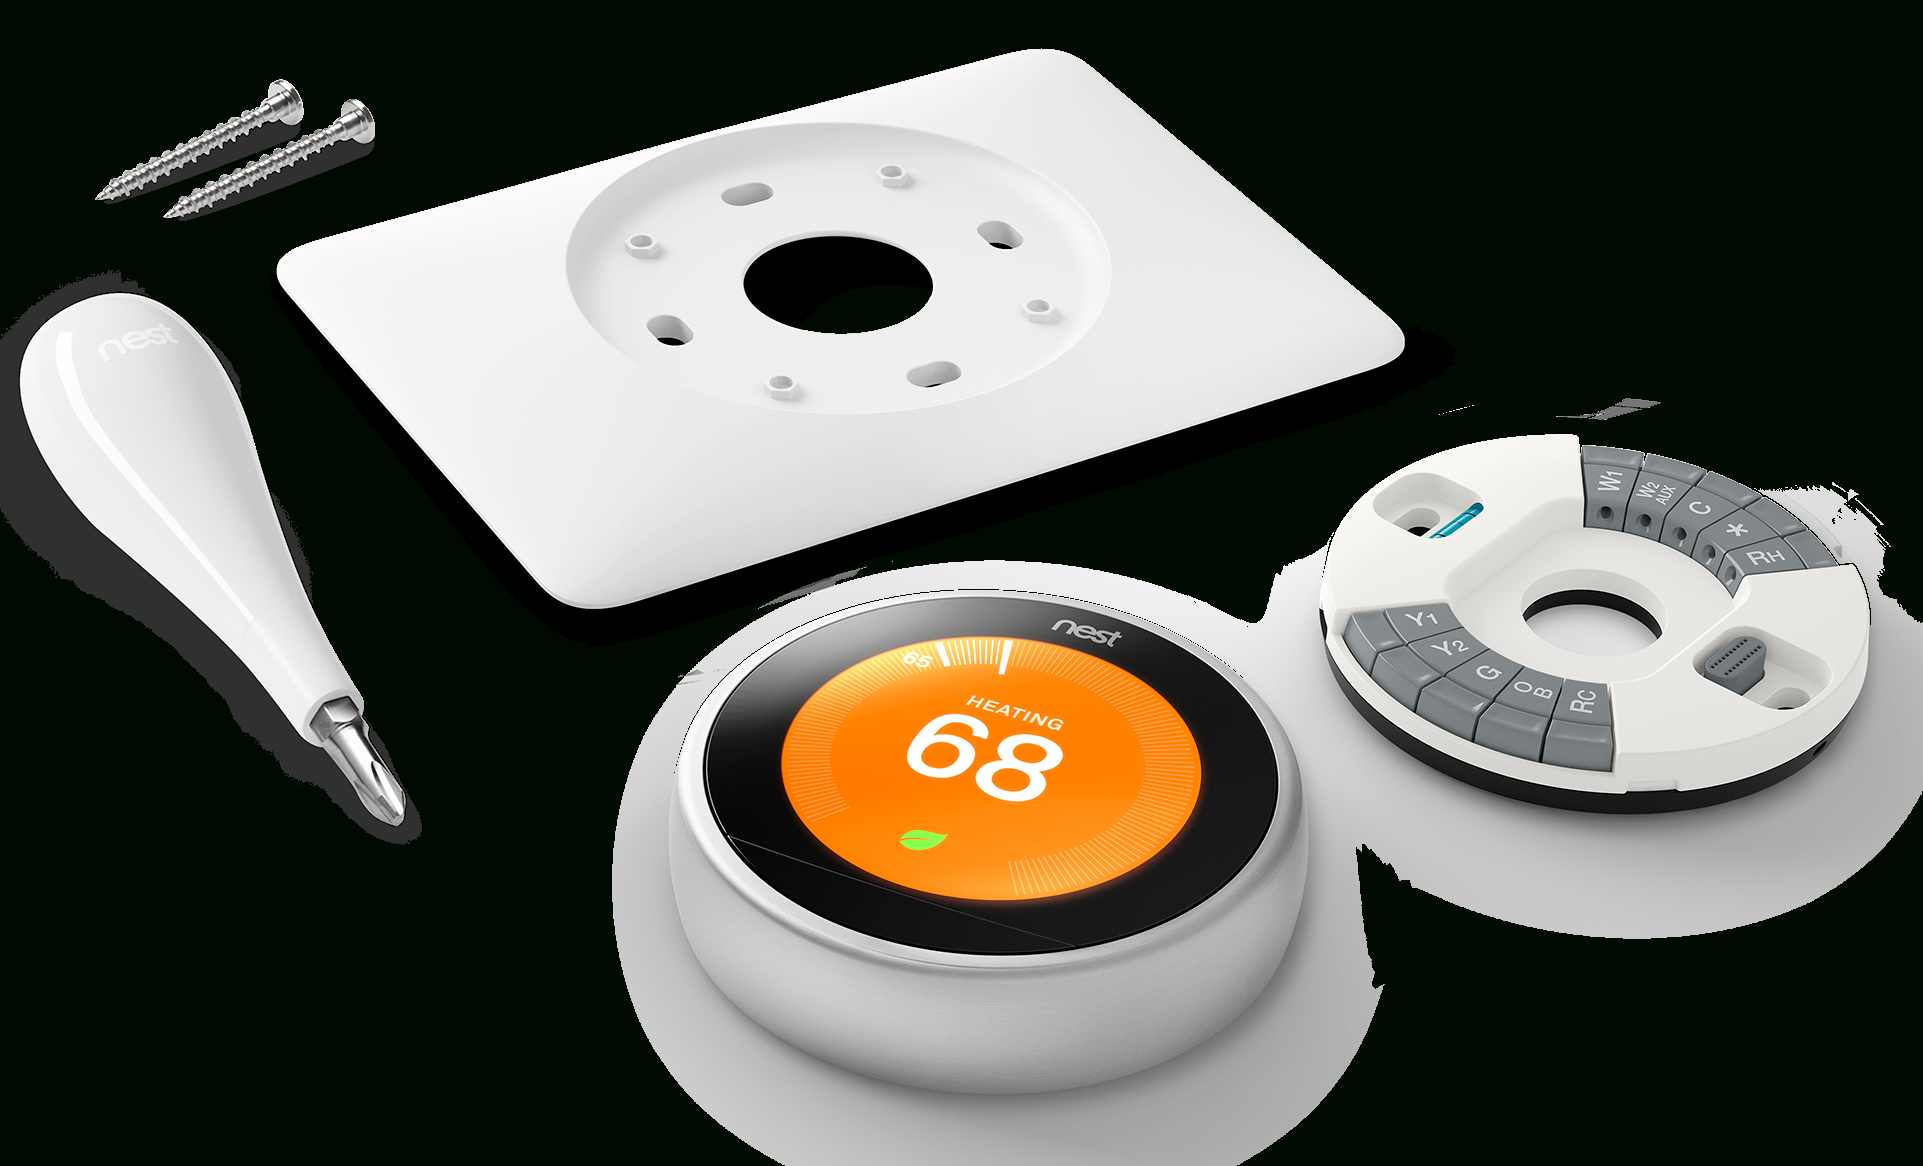 How To Install Your Nest Thermostat - Nest Wireless Thermostat Wiring Diagram Two System